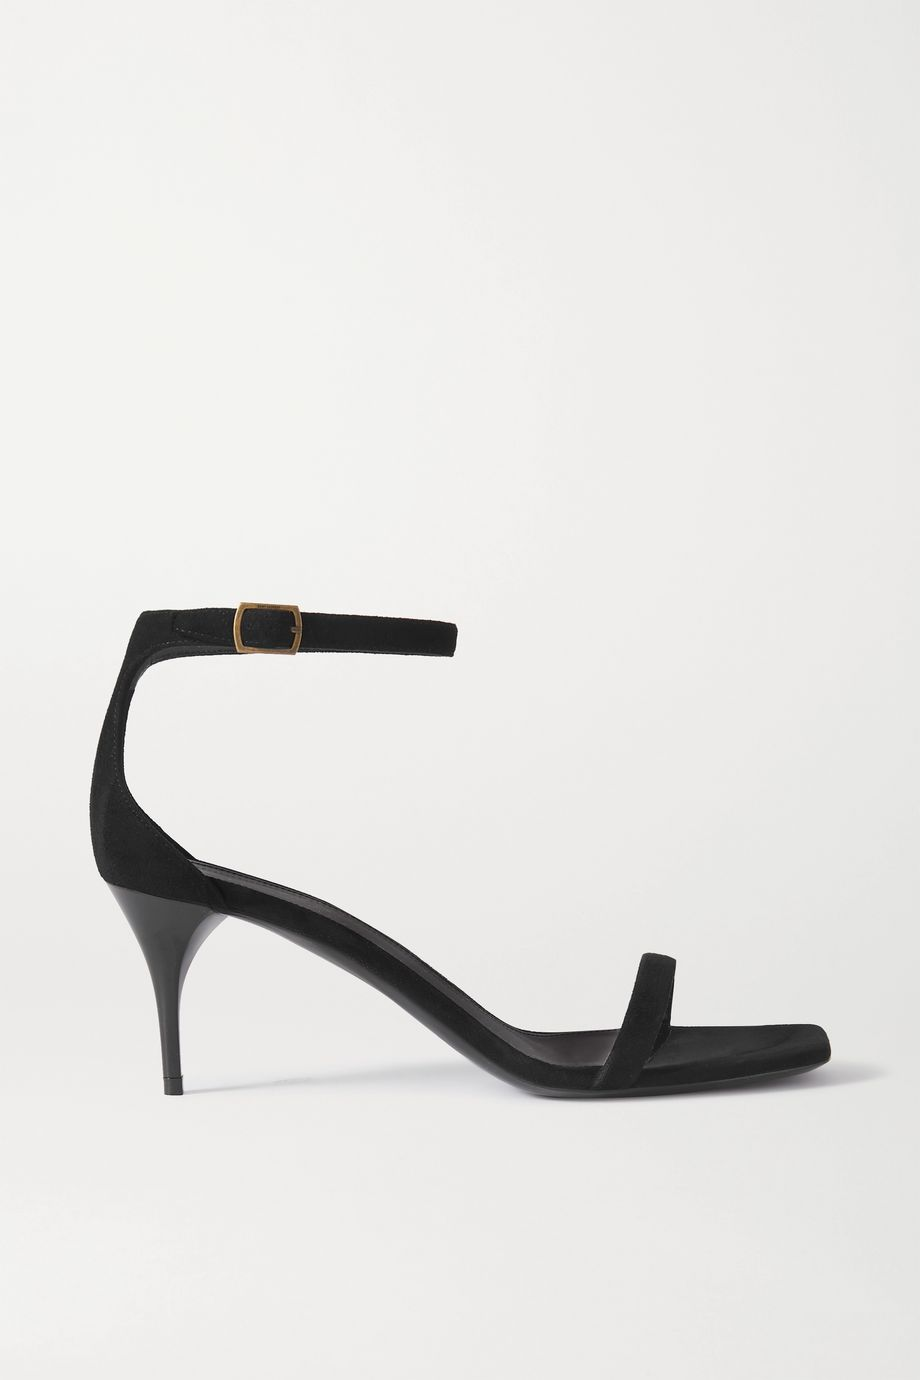 SAINT LAURENT Lexi suede sandals